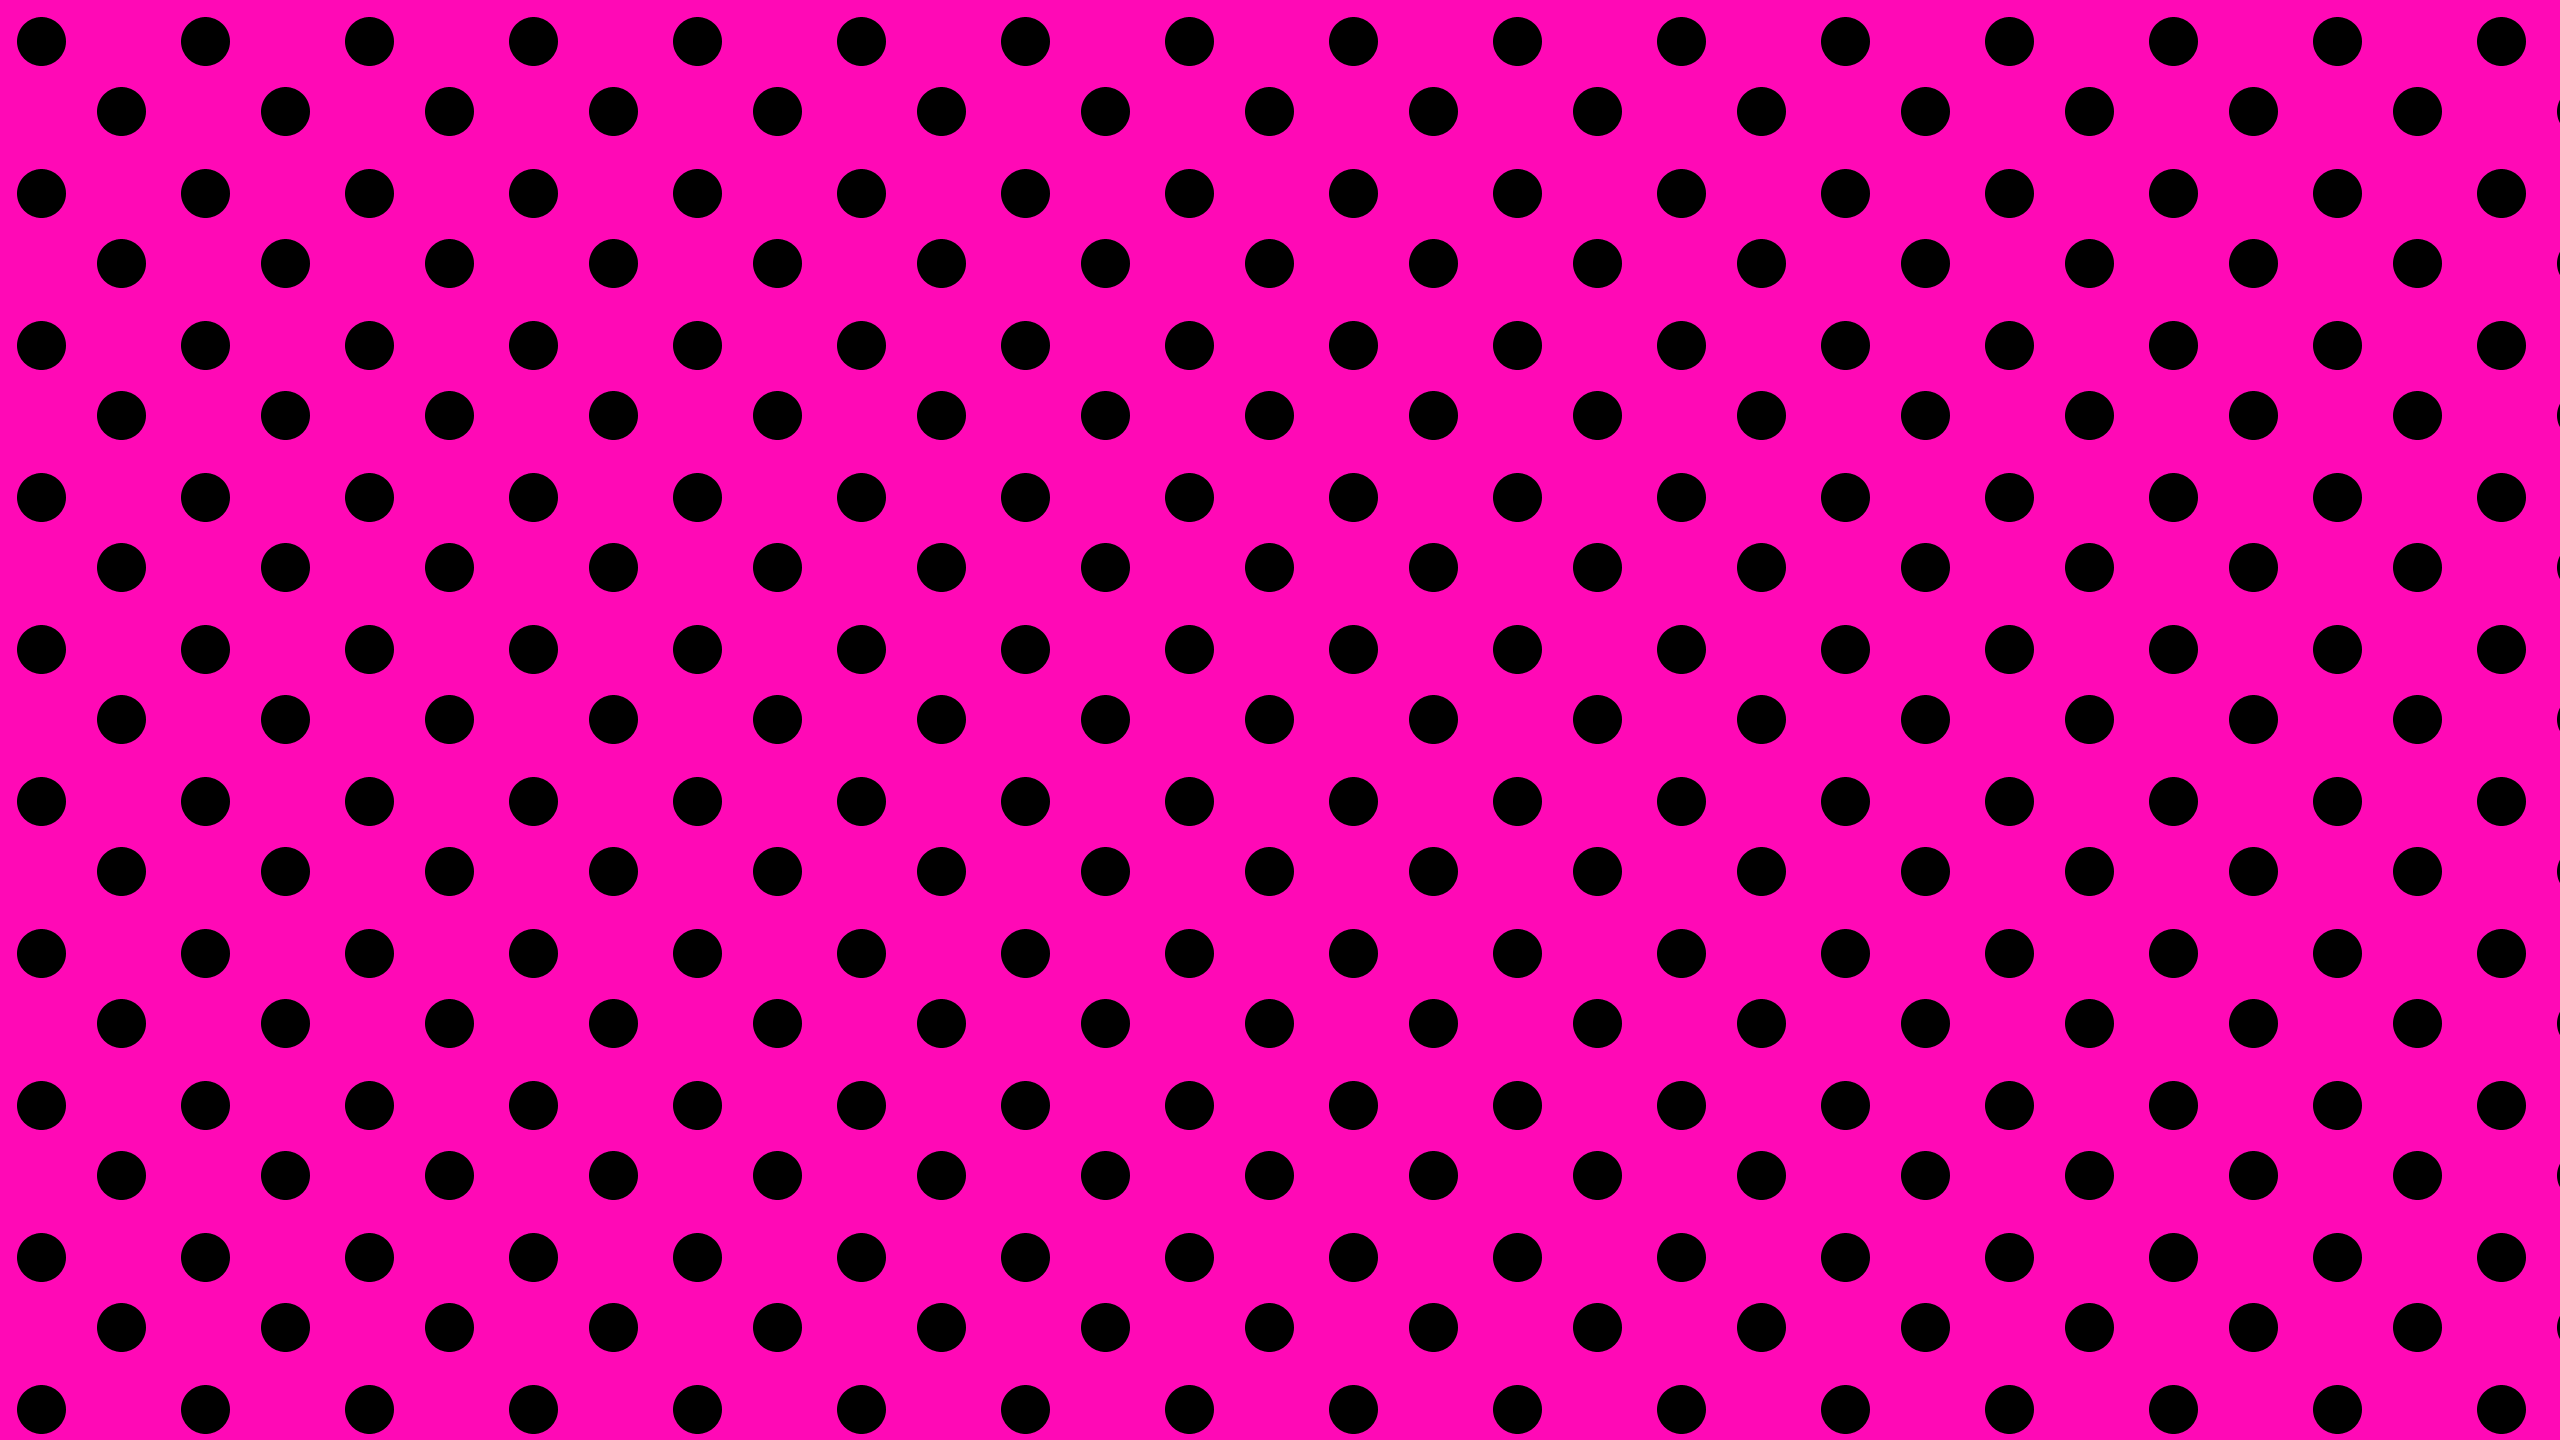 Large Pink Black Desktop Wallpaper is easy Just save the wallpaper 2560x1440